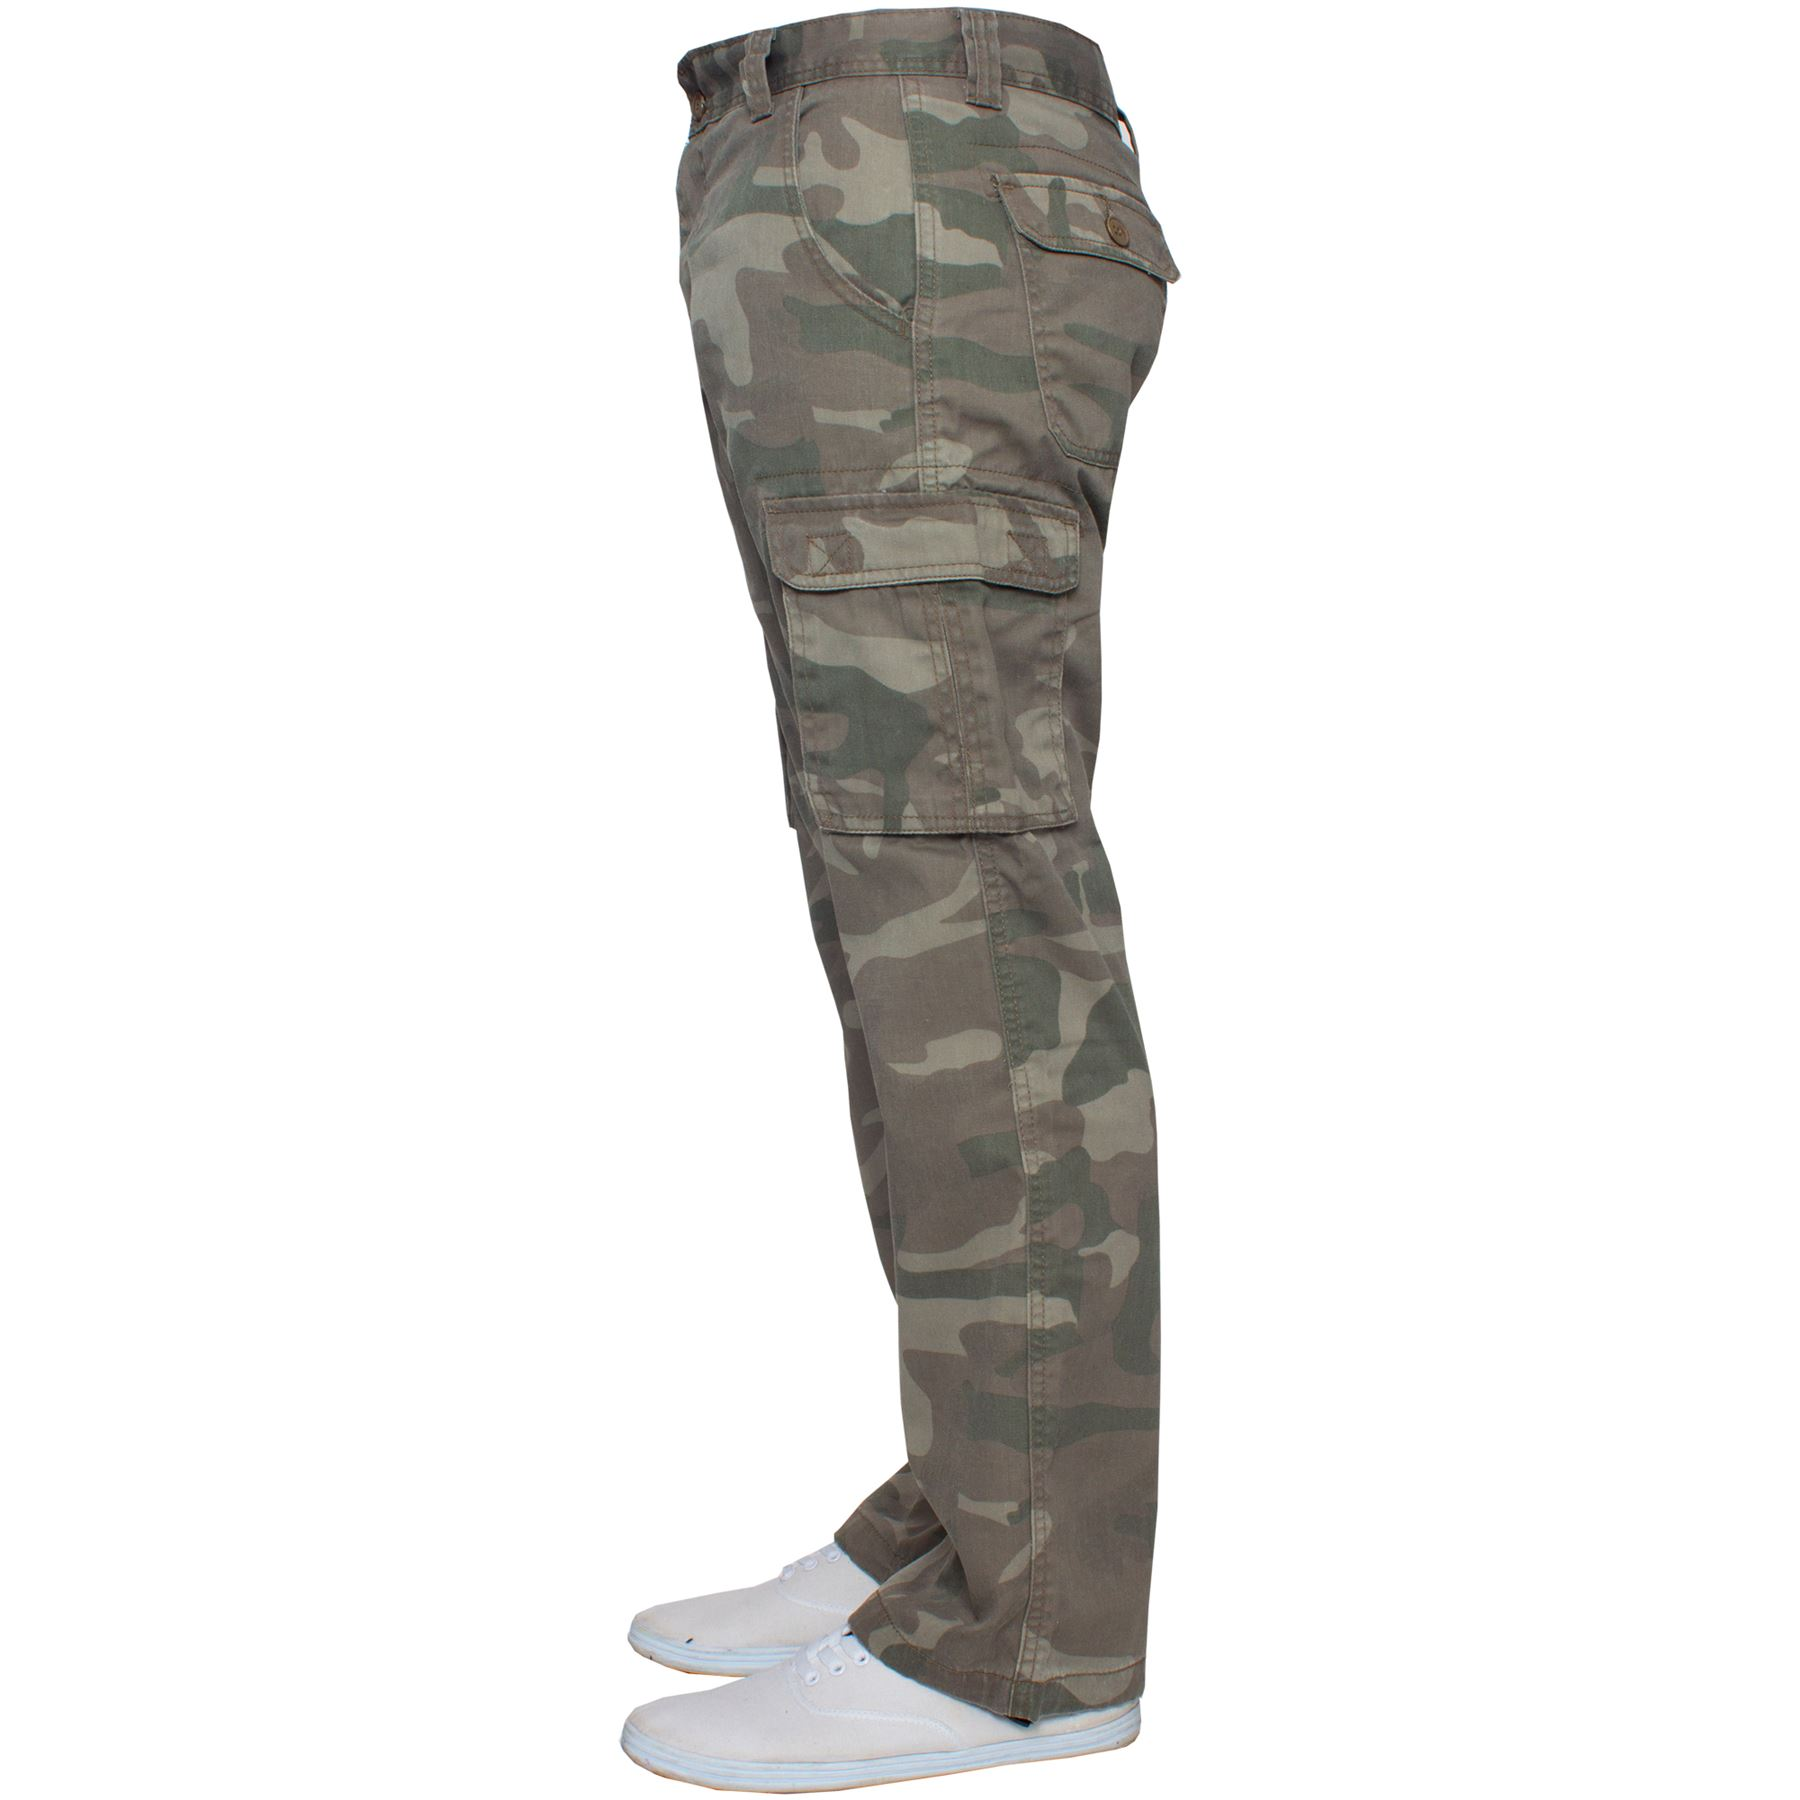 Kruze-Mens-Military-Combat-Trousers-Camouflage-Cargo-Camo-Army-Casual-Work-Pants miniatura 27